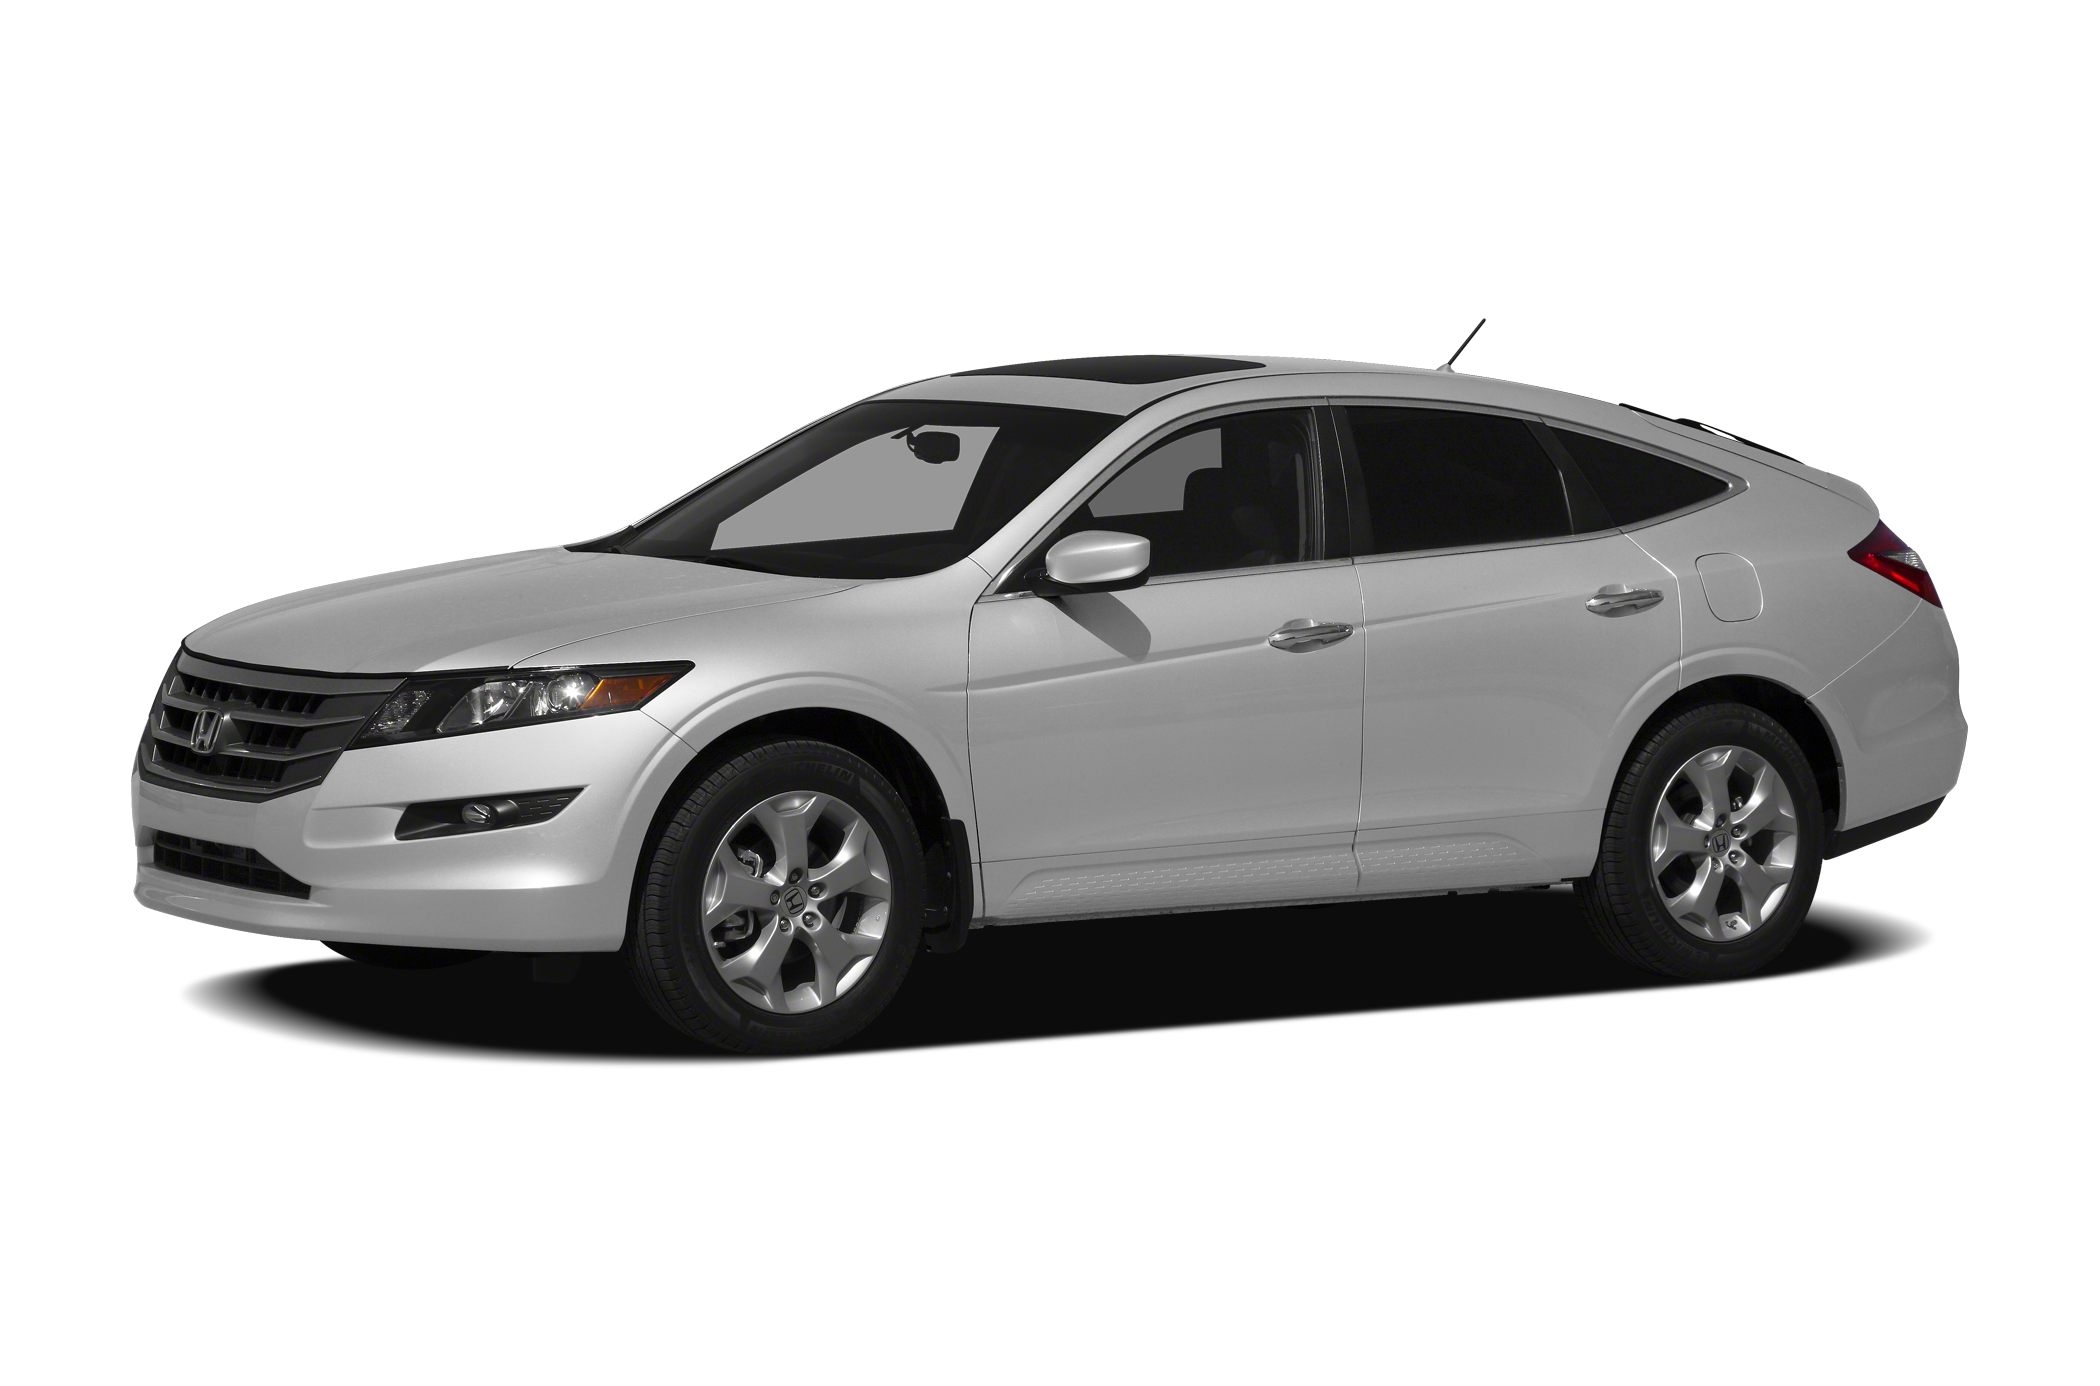 2012 Honda Crosstour